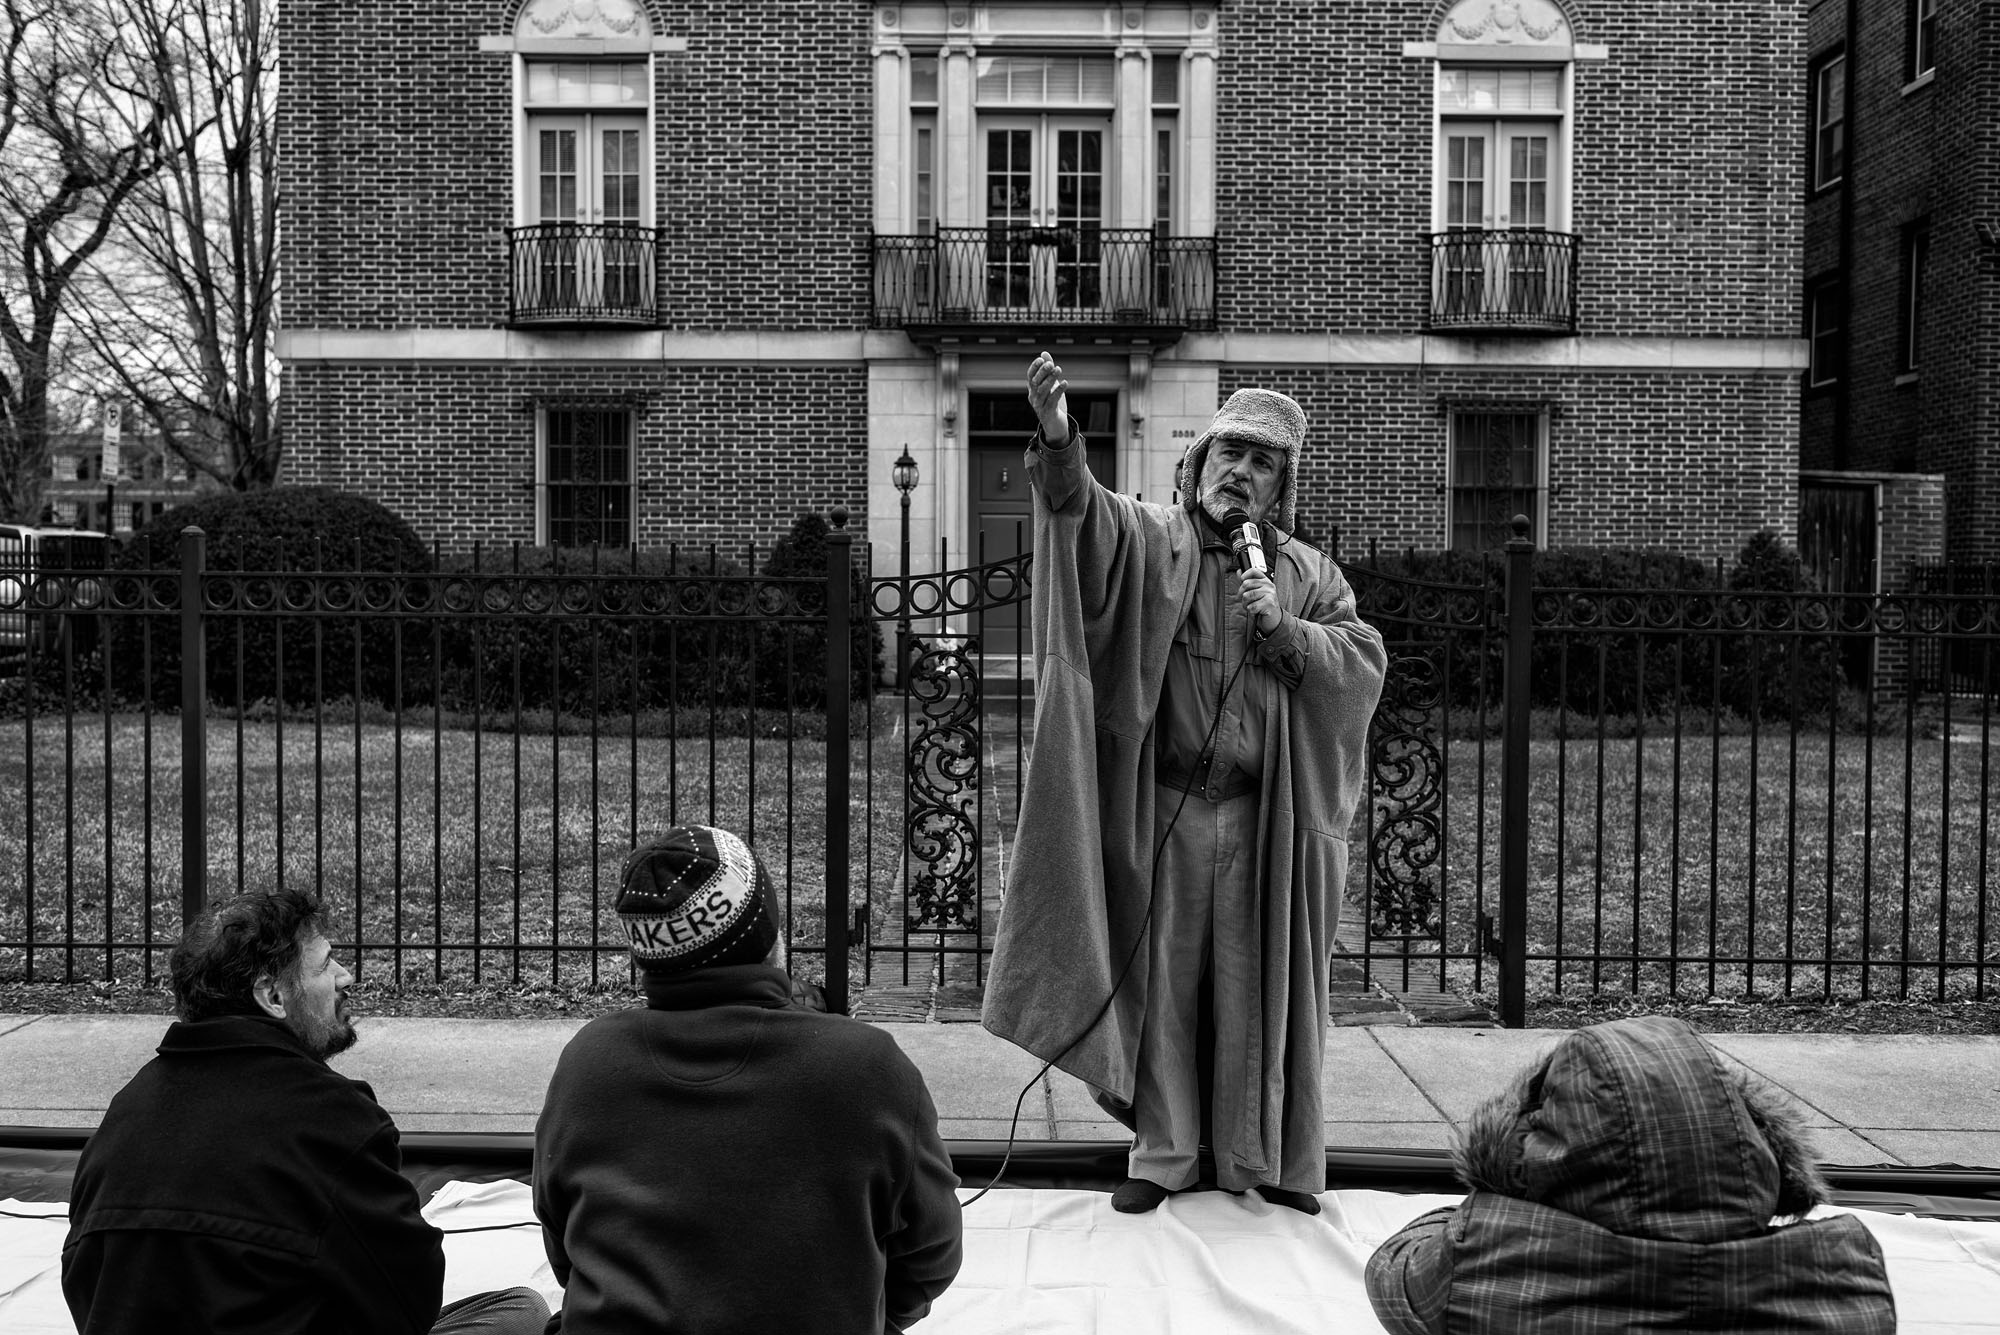 Imam al-Asi leads a group in prayers outside the Islamic Center of Washington on February 3, 2017.